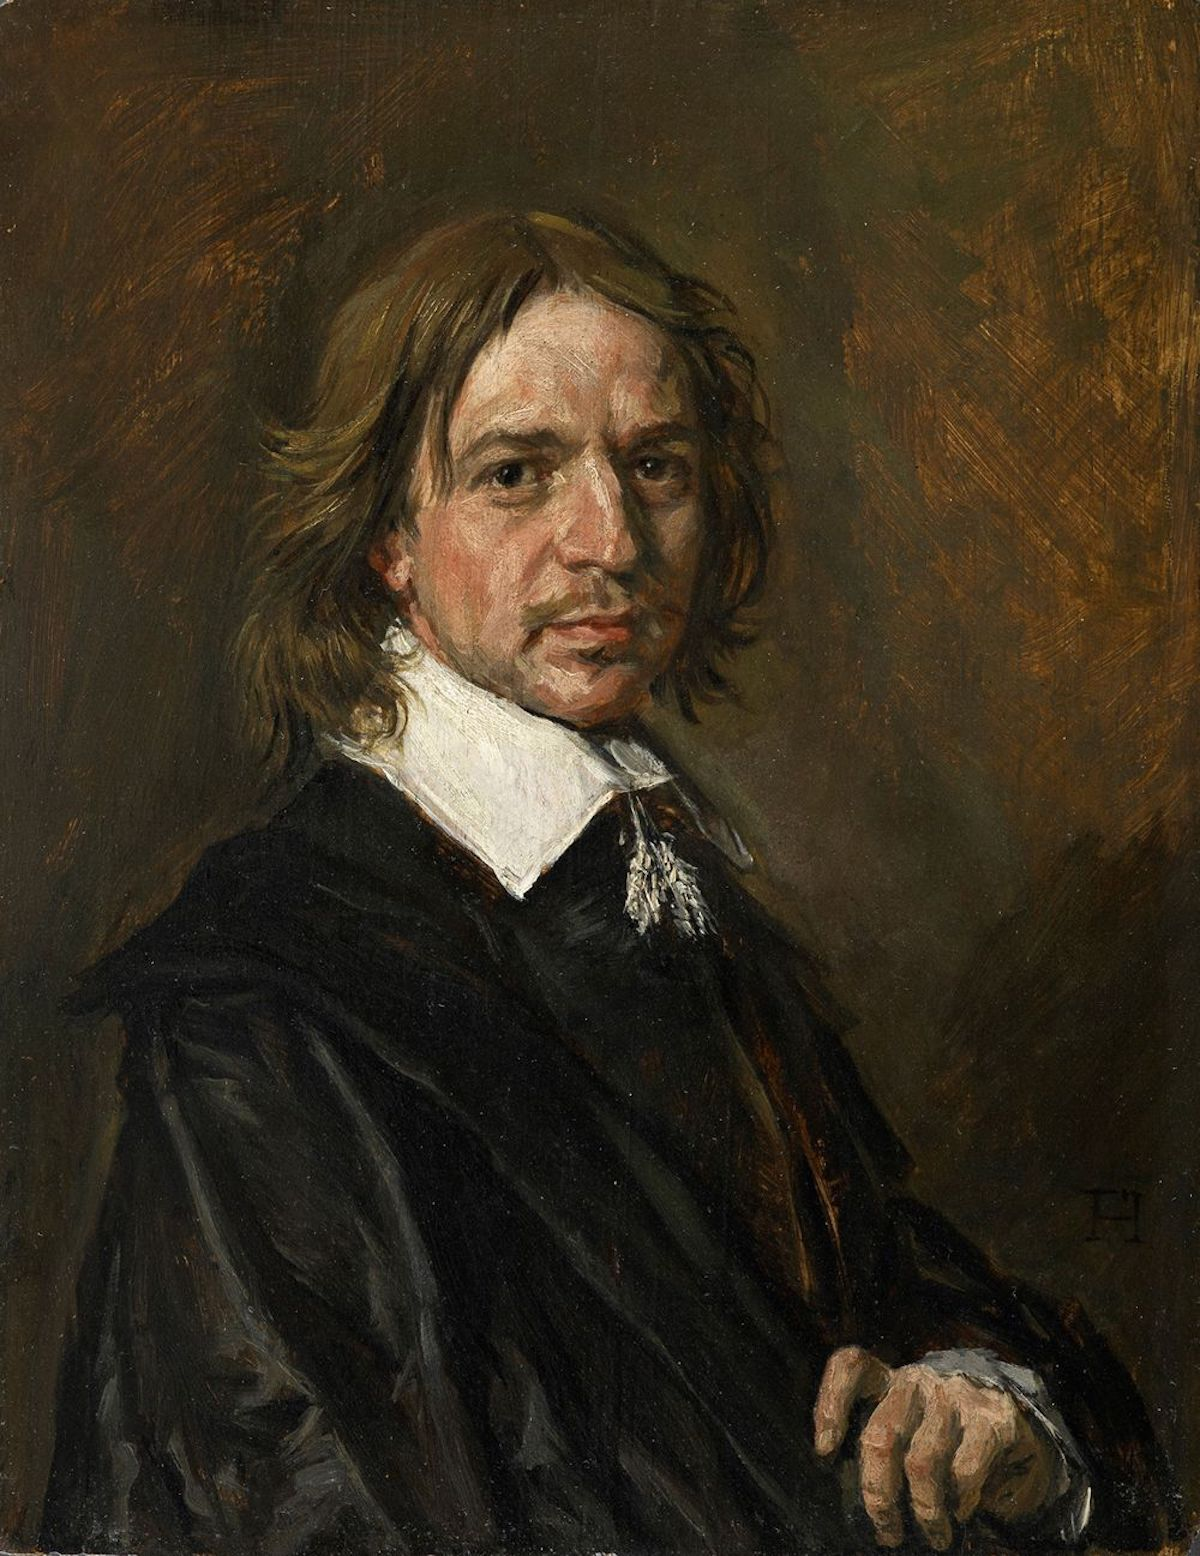 A painting formerly believed to be a portrait by Frans Hals, now believed to be a modern forgery. Image via Wikimedia Commons.